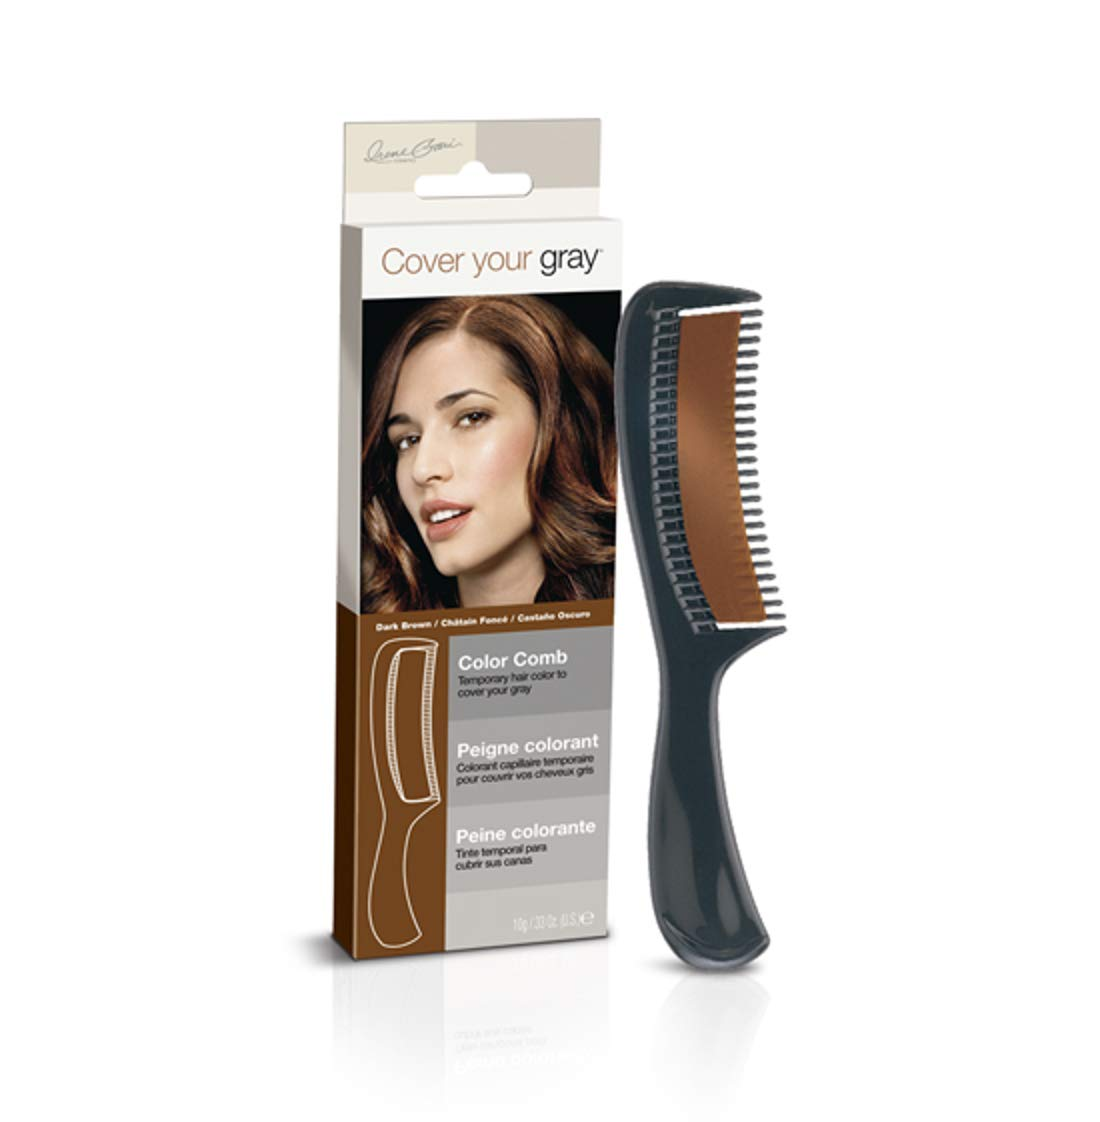 Cover Your Gray Color Comb Dark Brown Hair Daggett & Ramsdell IG-CCD